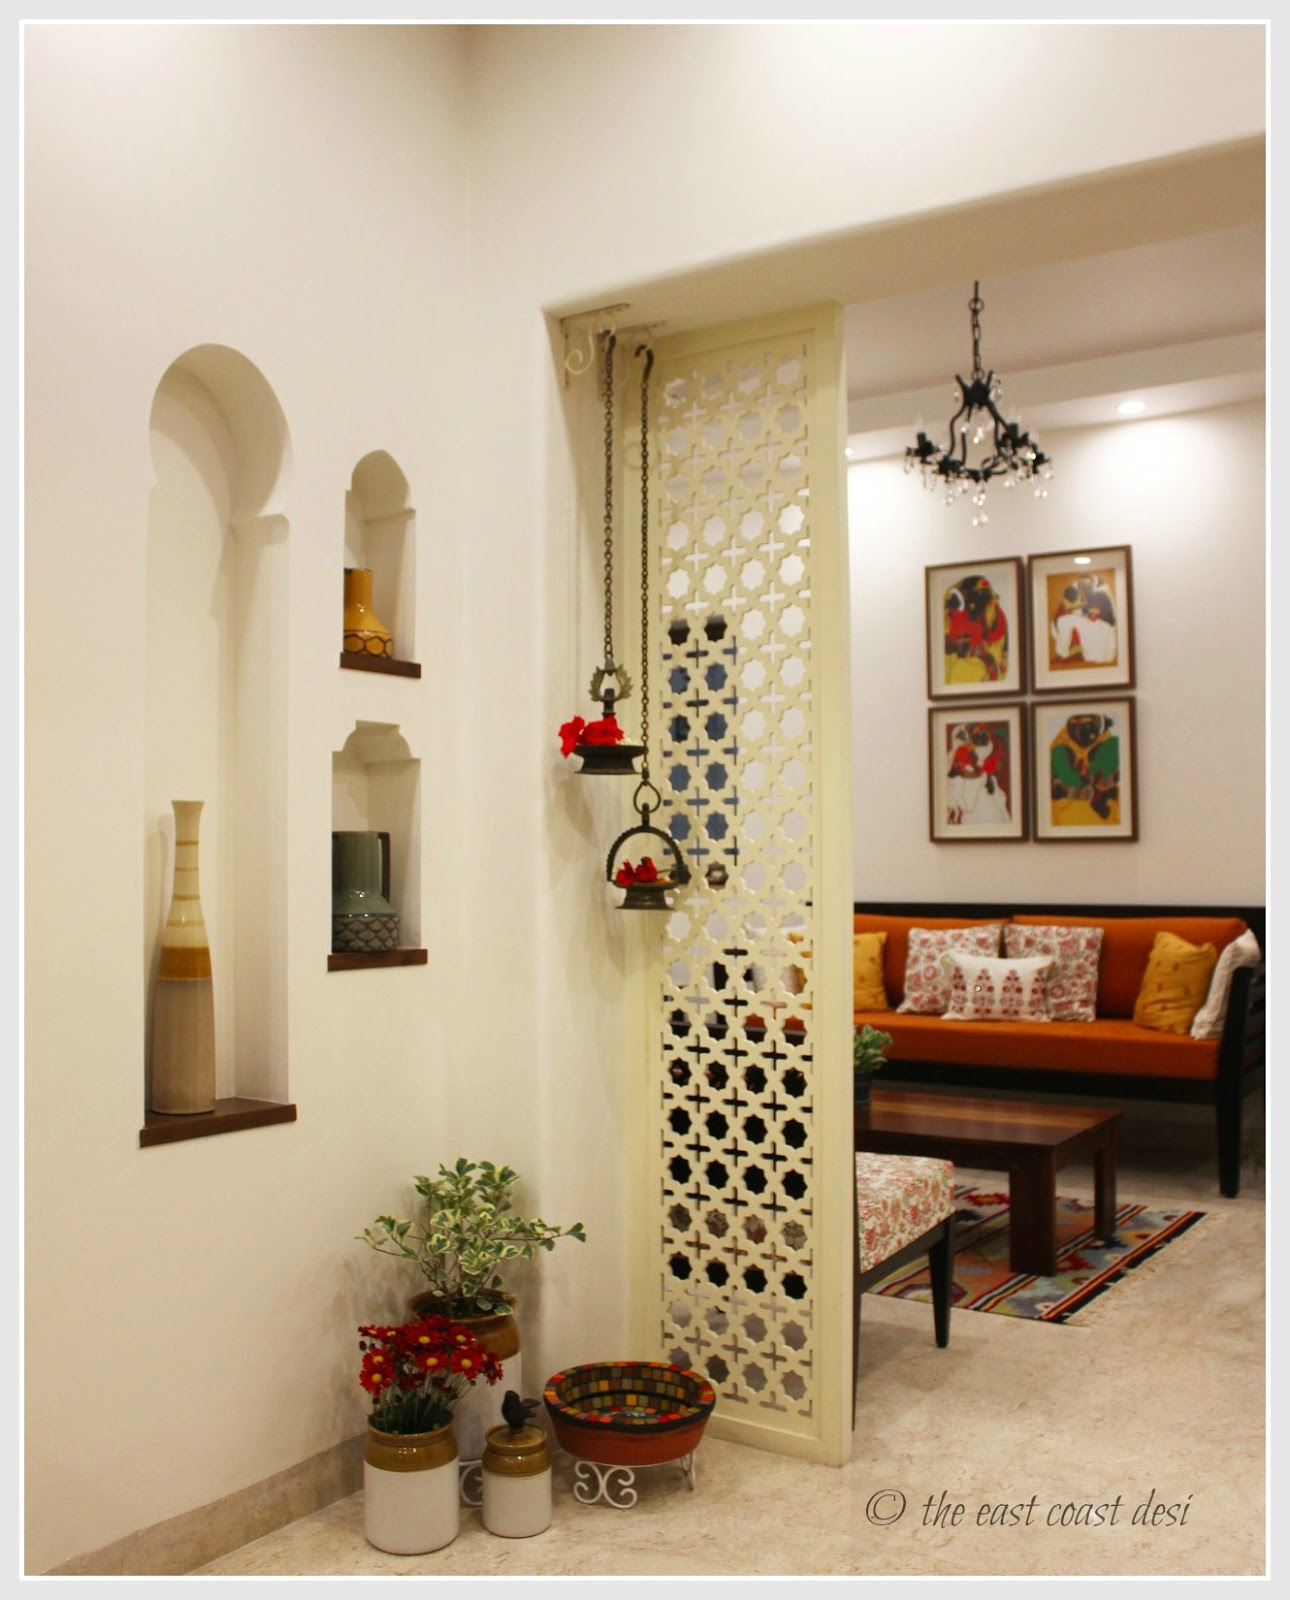 The east coast desi keeping it elegantly eclectic home tour Home and decoration